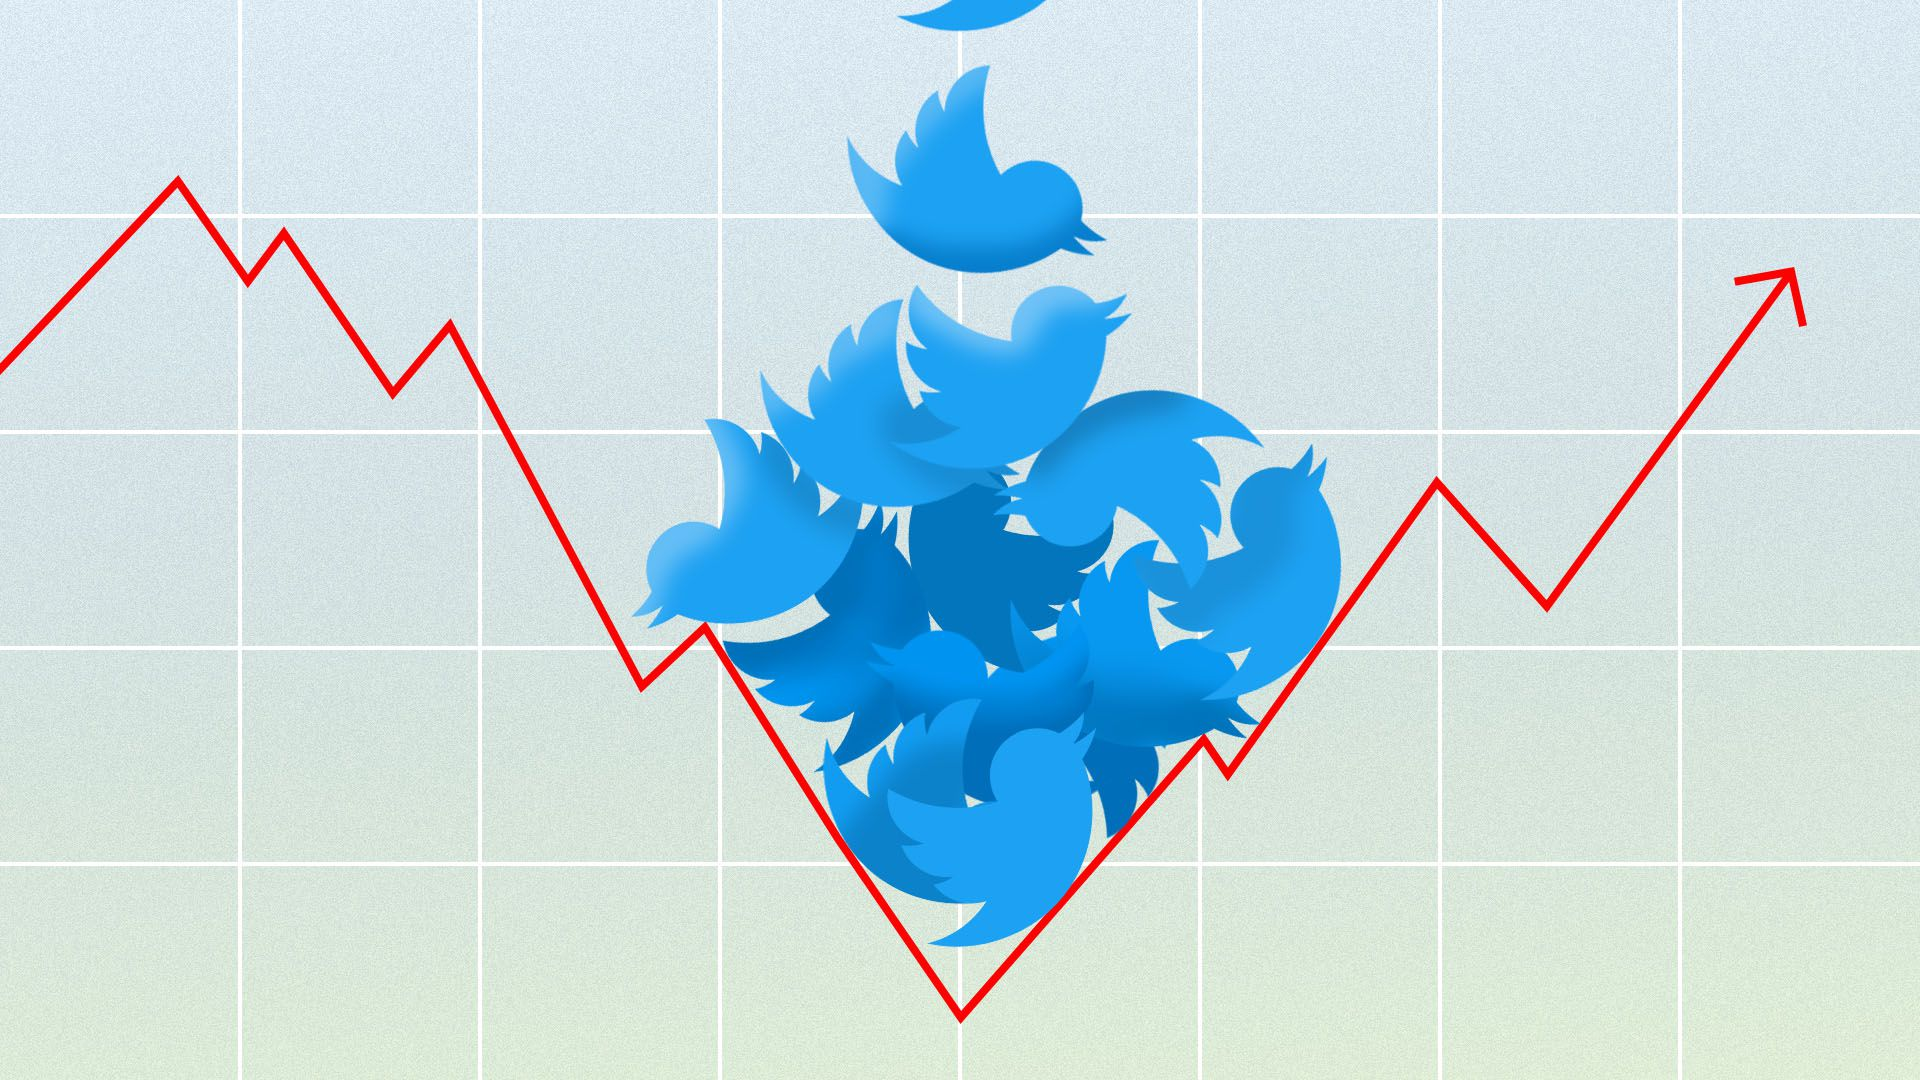 Illustration of line chart being weighed down by a pile of Twitter birds